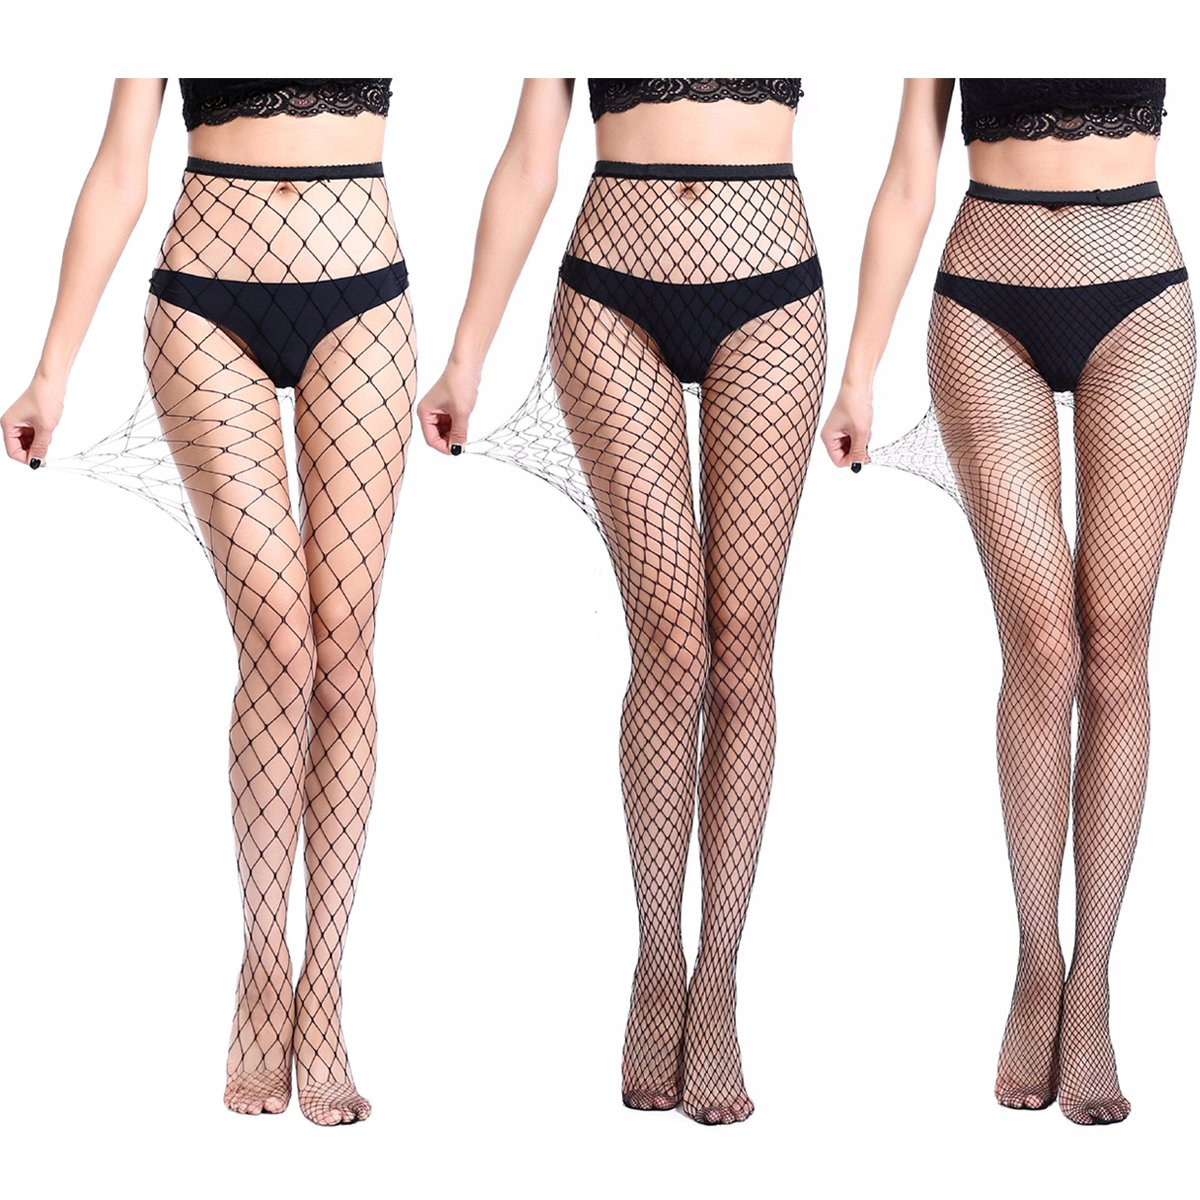 3 Pairs High Waist Tights Fishnet Stockings Thigh High Socks Mesh Net Pantyhose